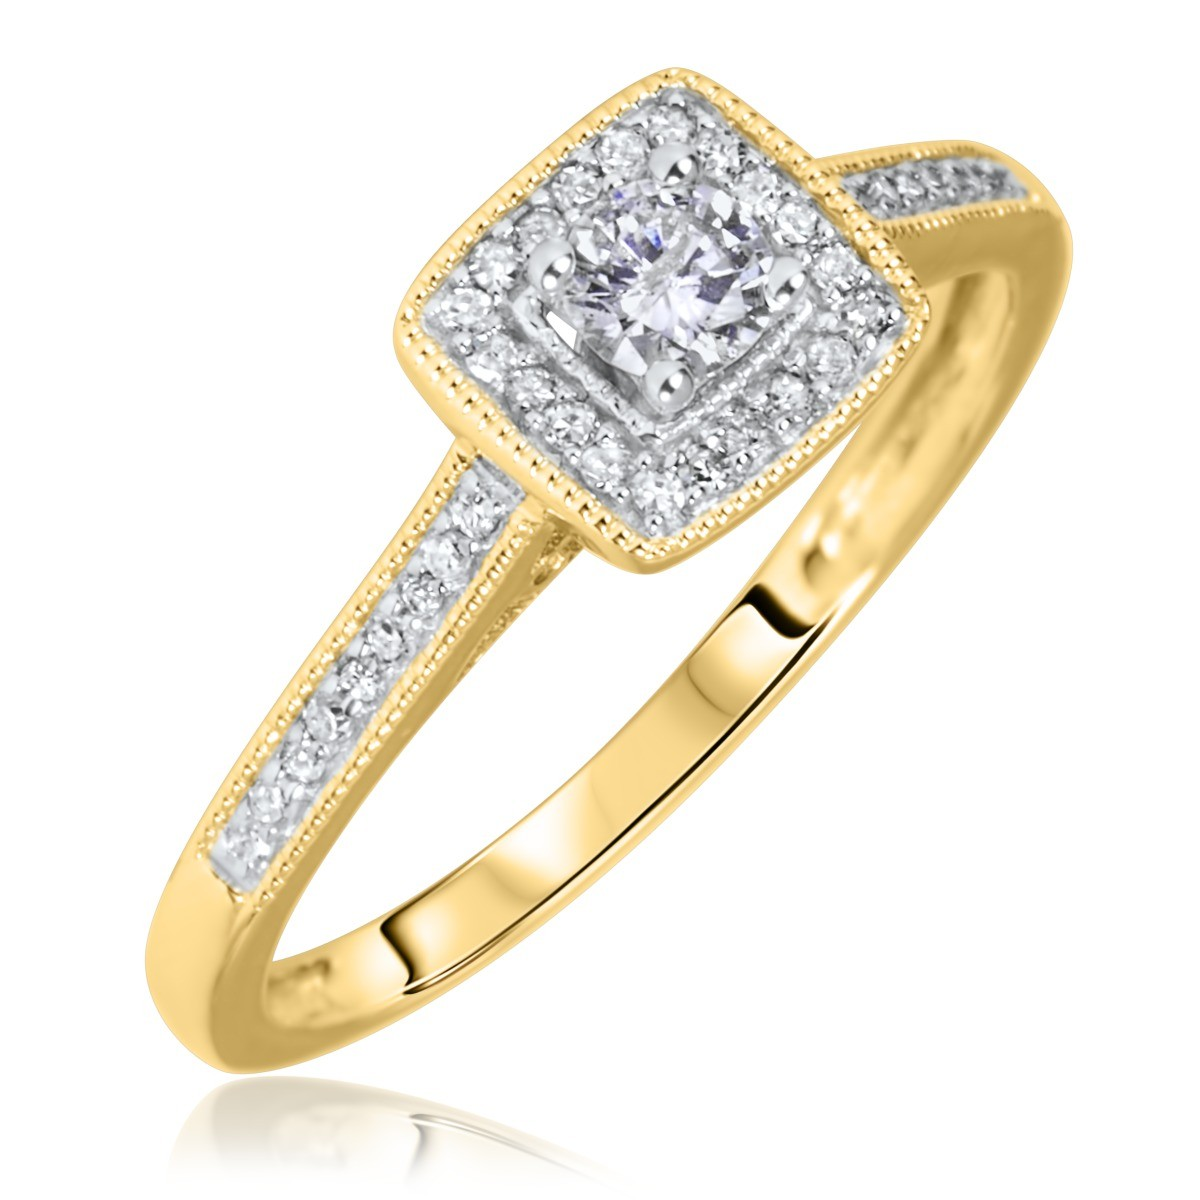 1/5 Carat T.W. Round Cut Diamond Ladies Engagement Ring 10K Yellow Gold